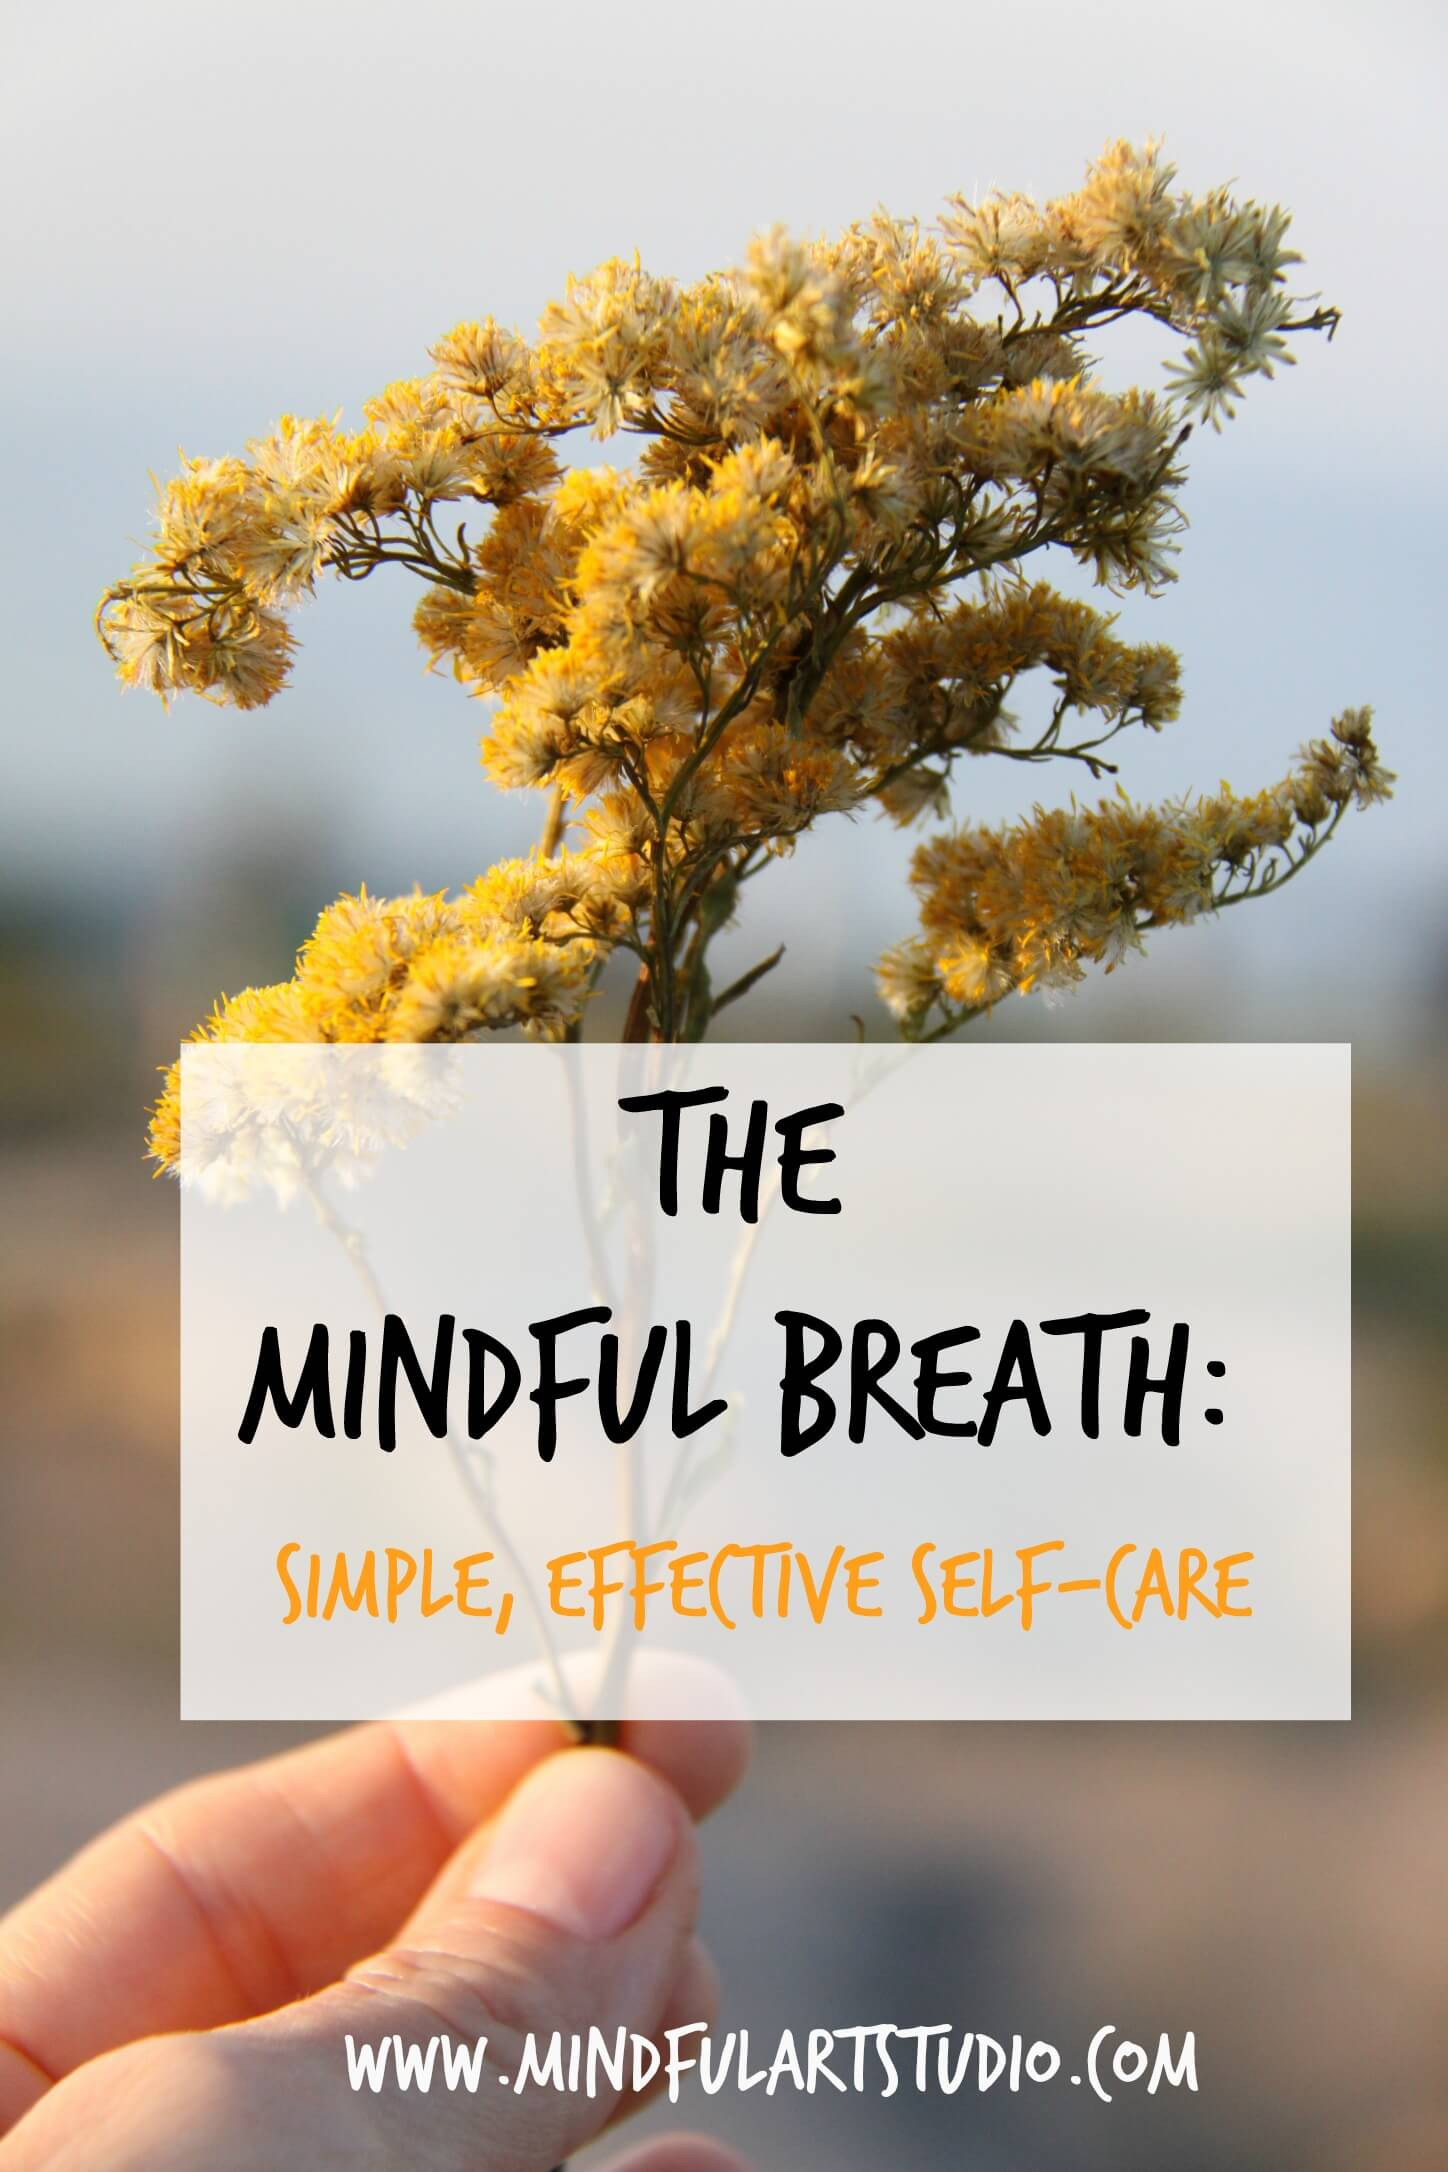 The Mindful Breath: A Simple Form of Self-Care